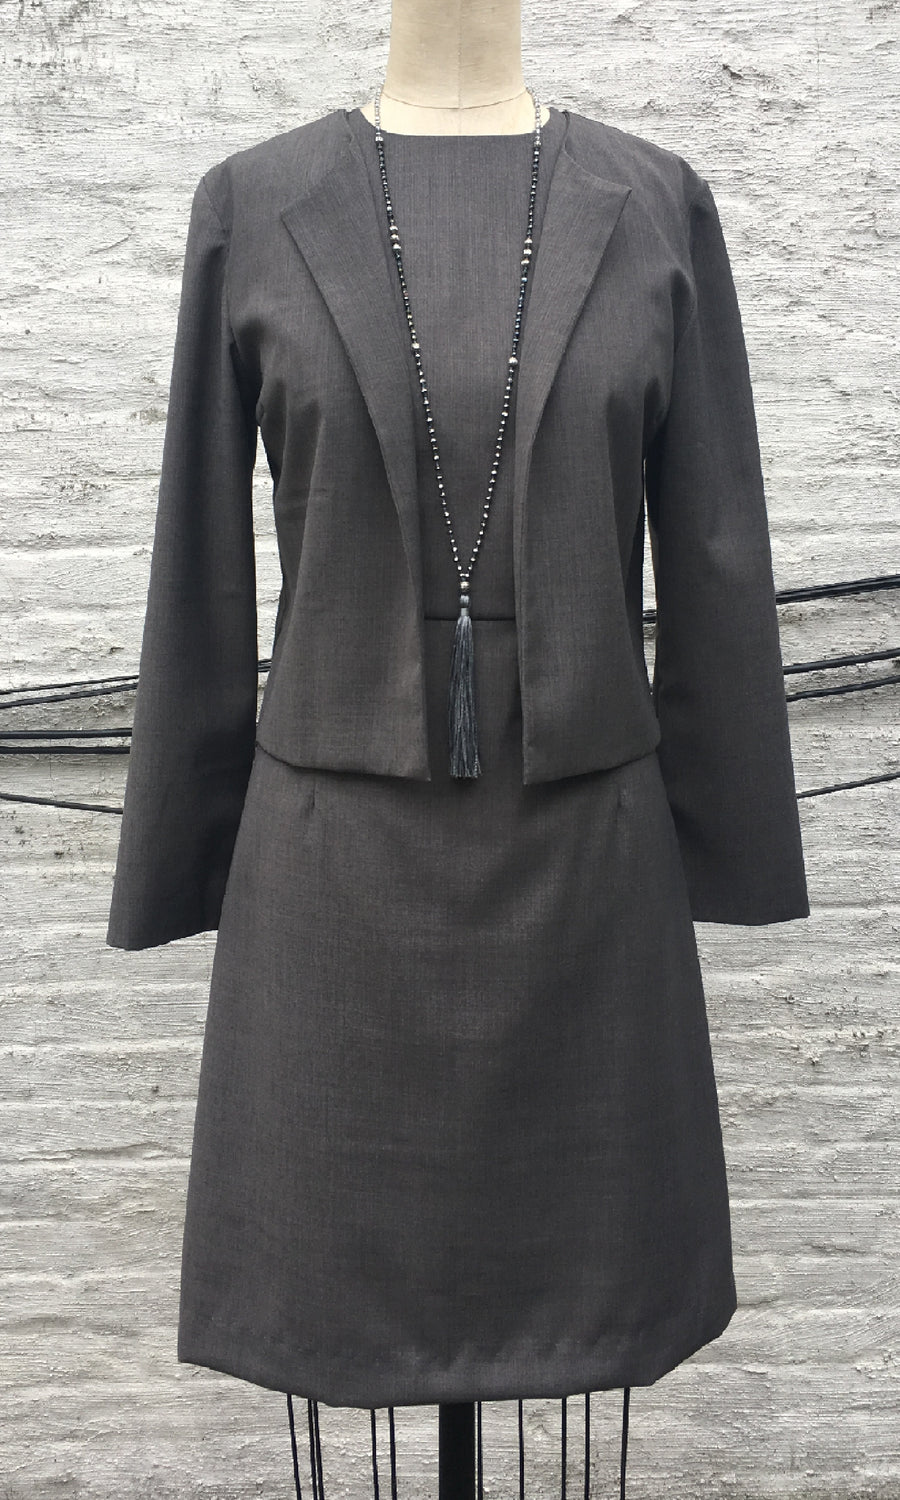 Gray Wool Blend Jacket and Dress Set, size Small